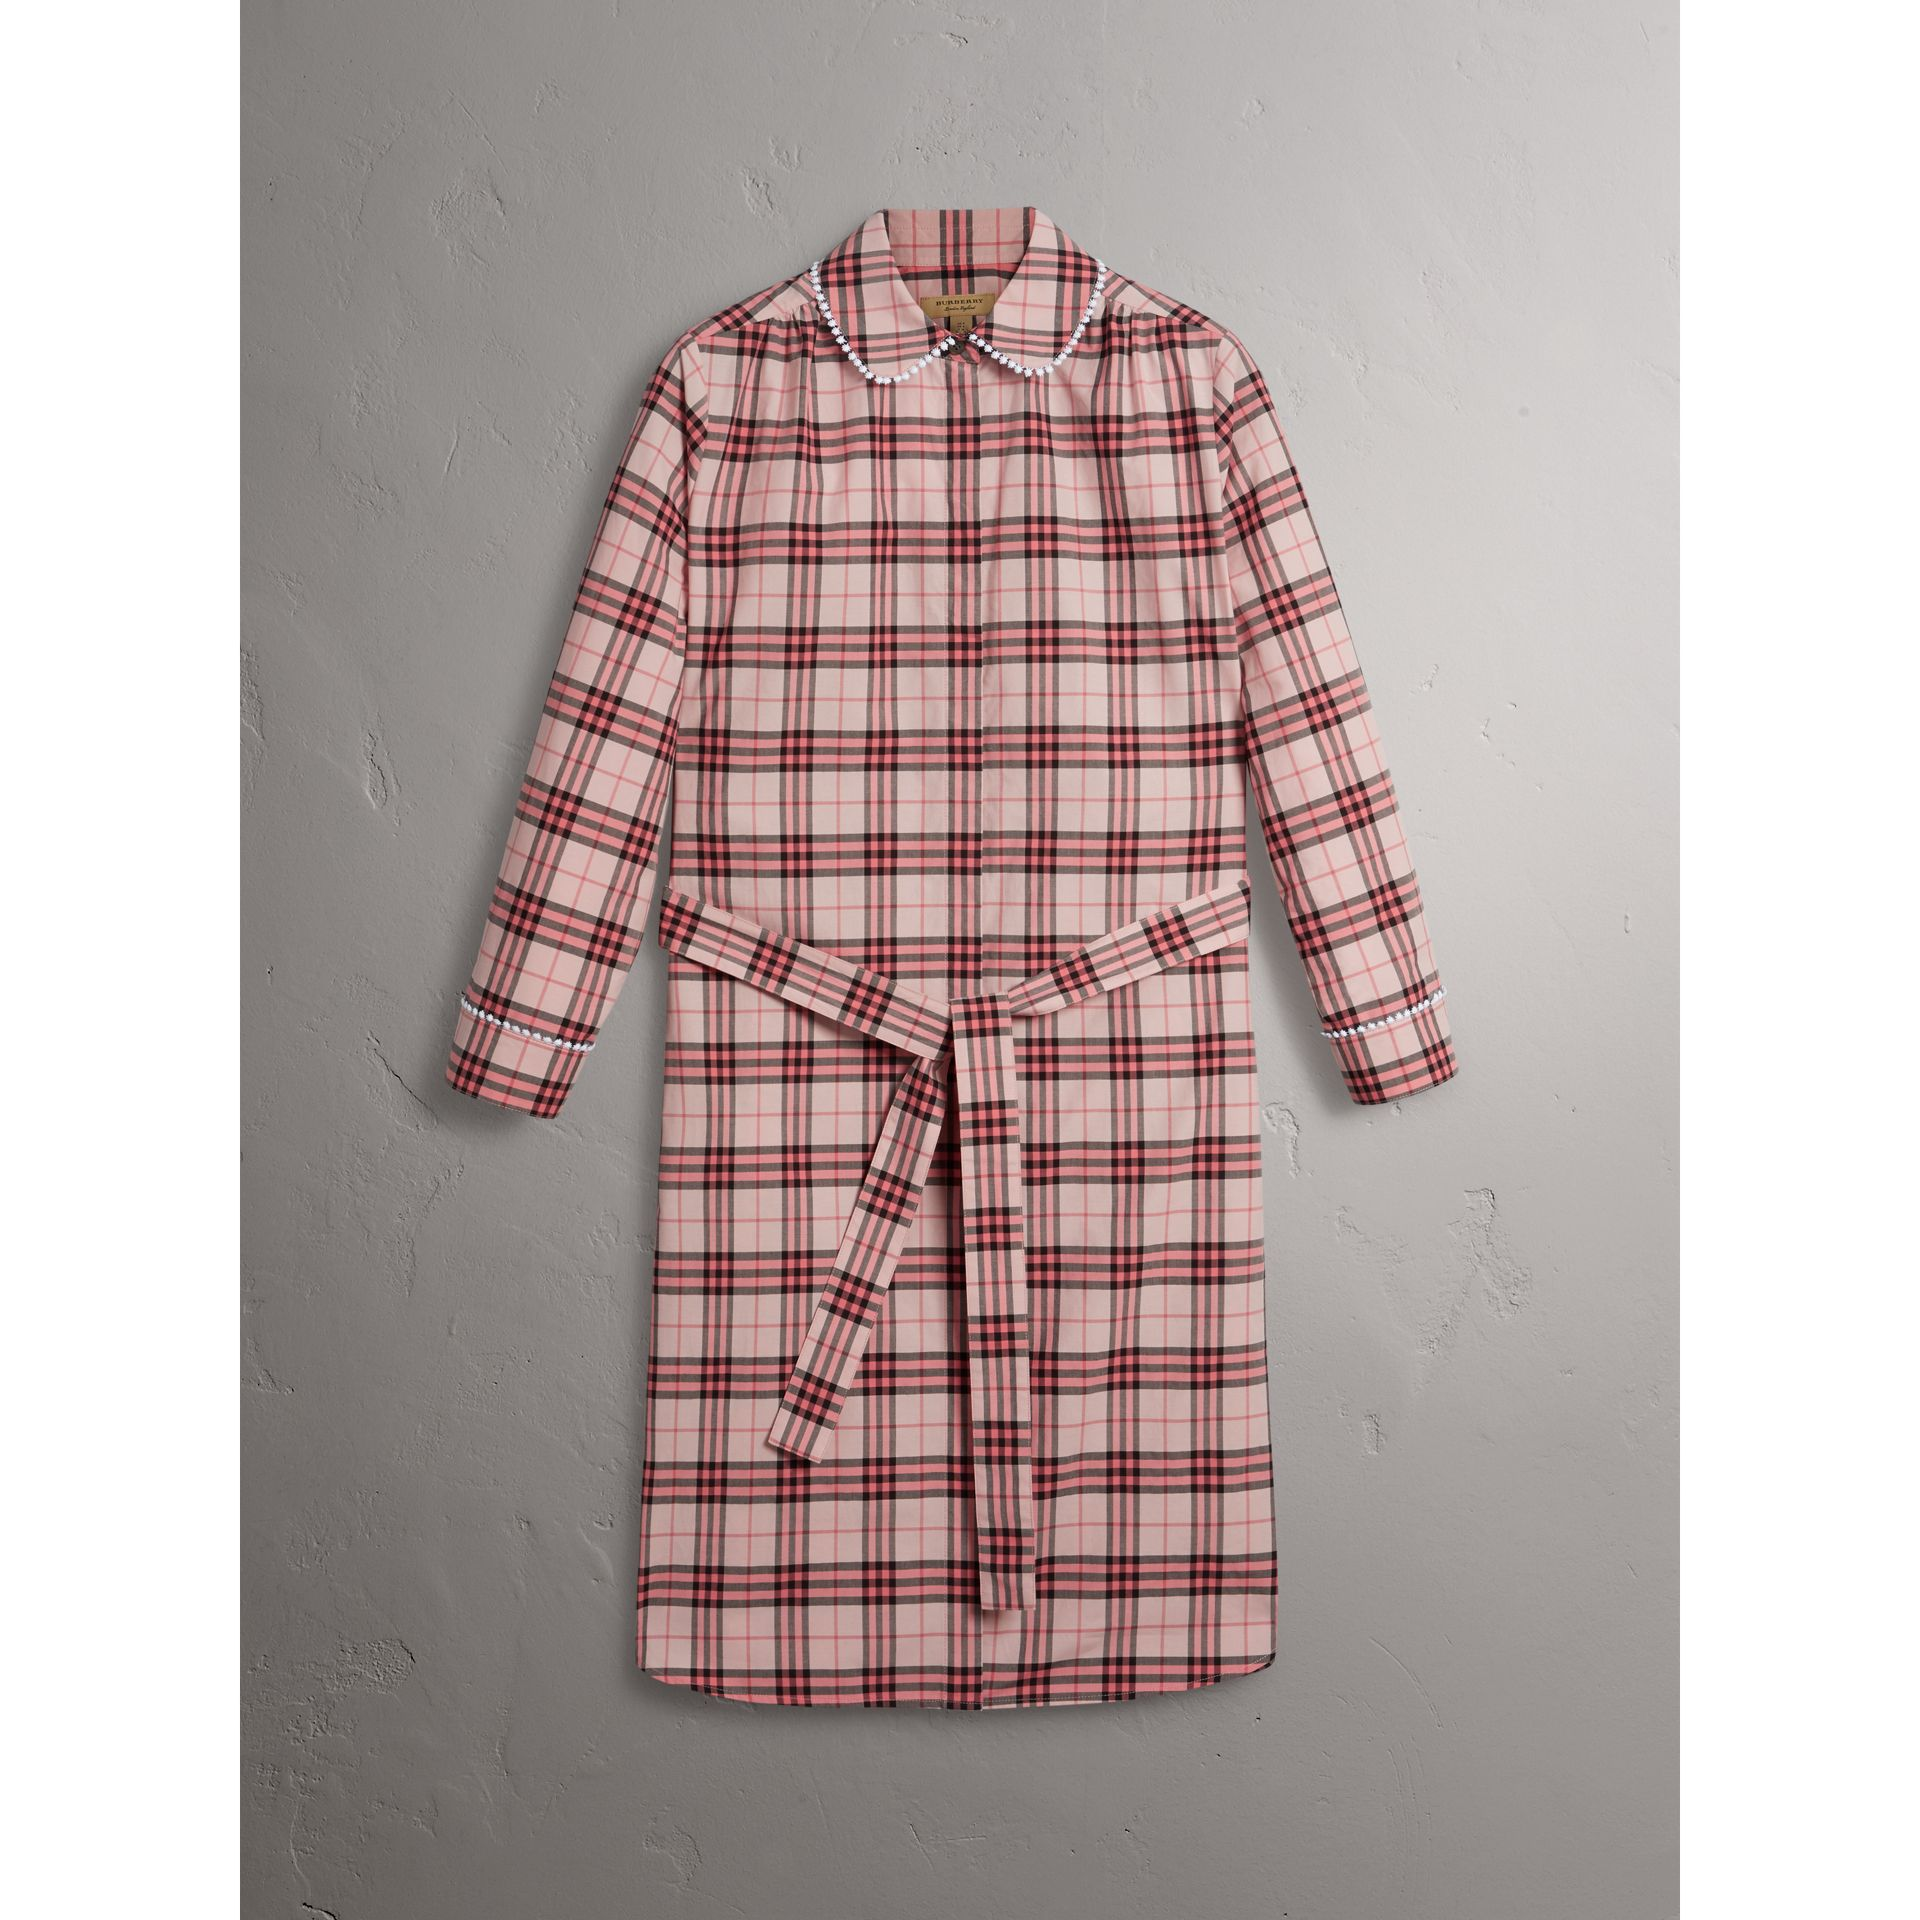 Lace Trim Collar Check Cotton Shirt Dress in Pink Azalea - Women | Burberry - gallery image 3